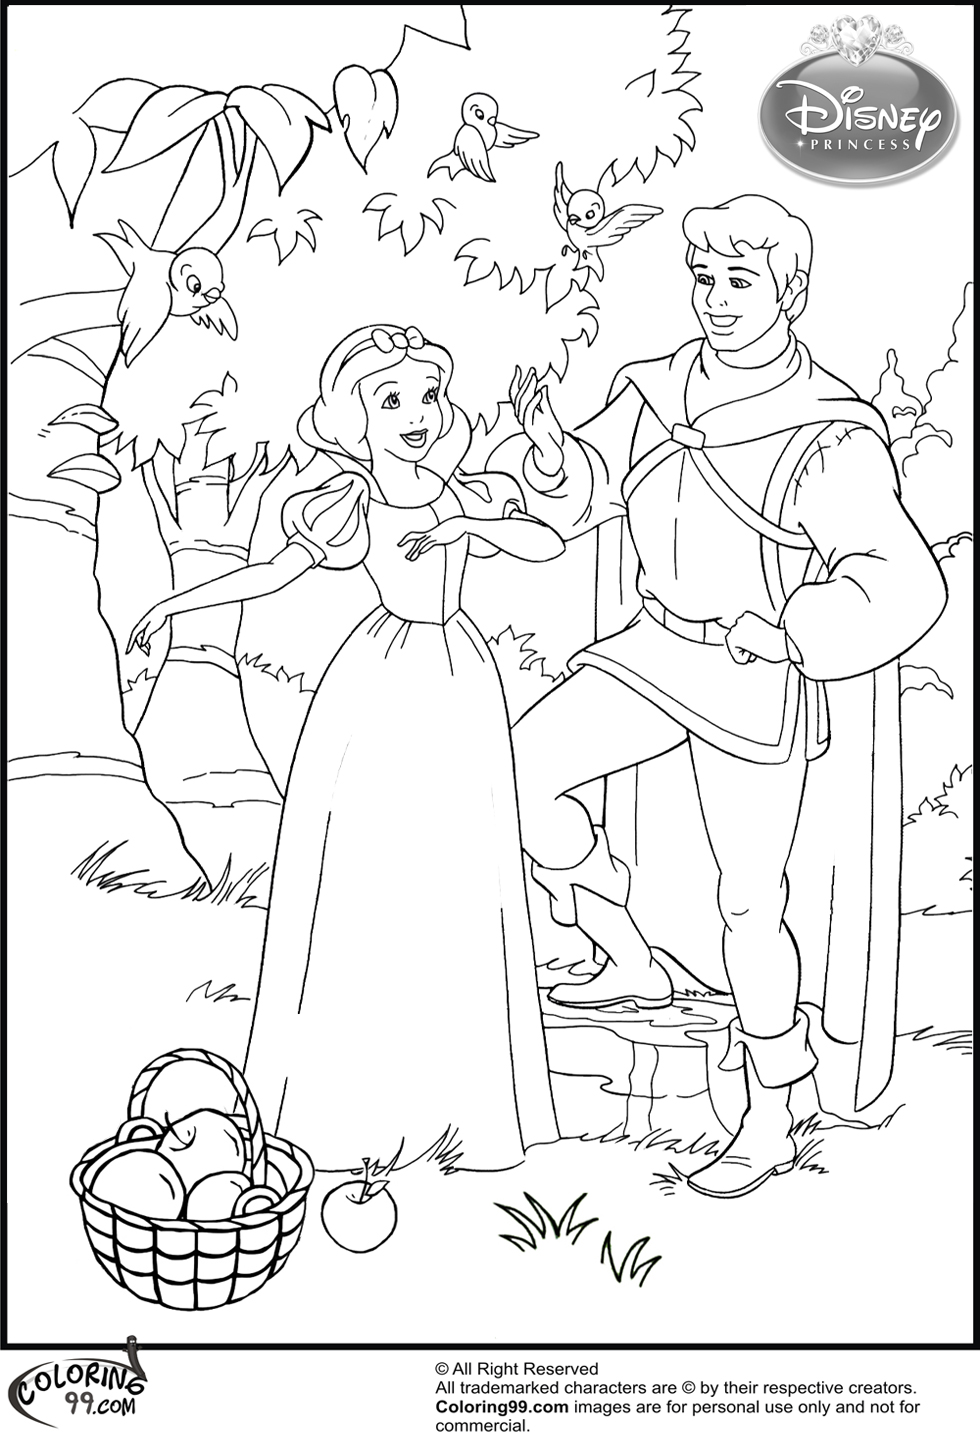 Kids-n-fun 34 coloring pages of Snow White